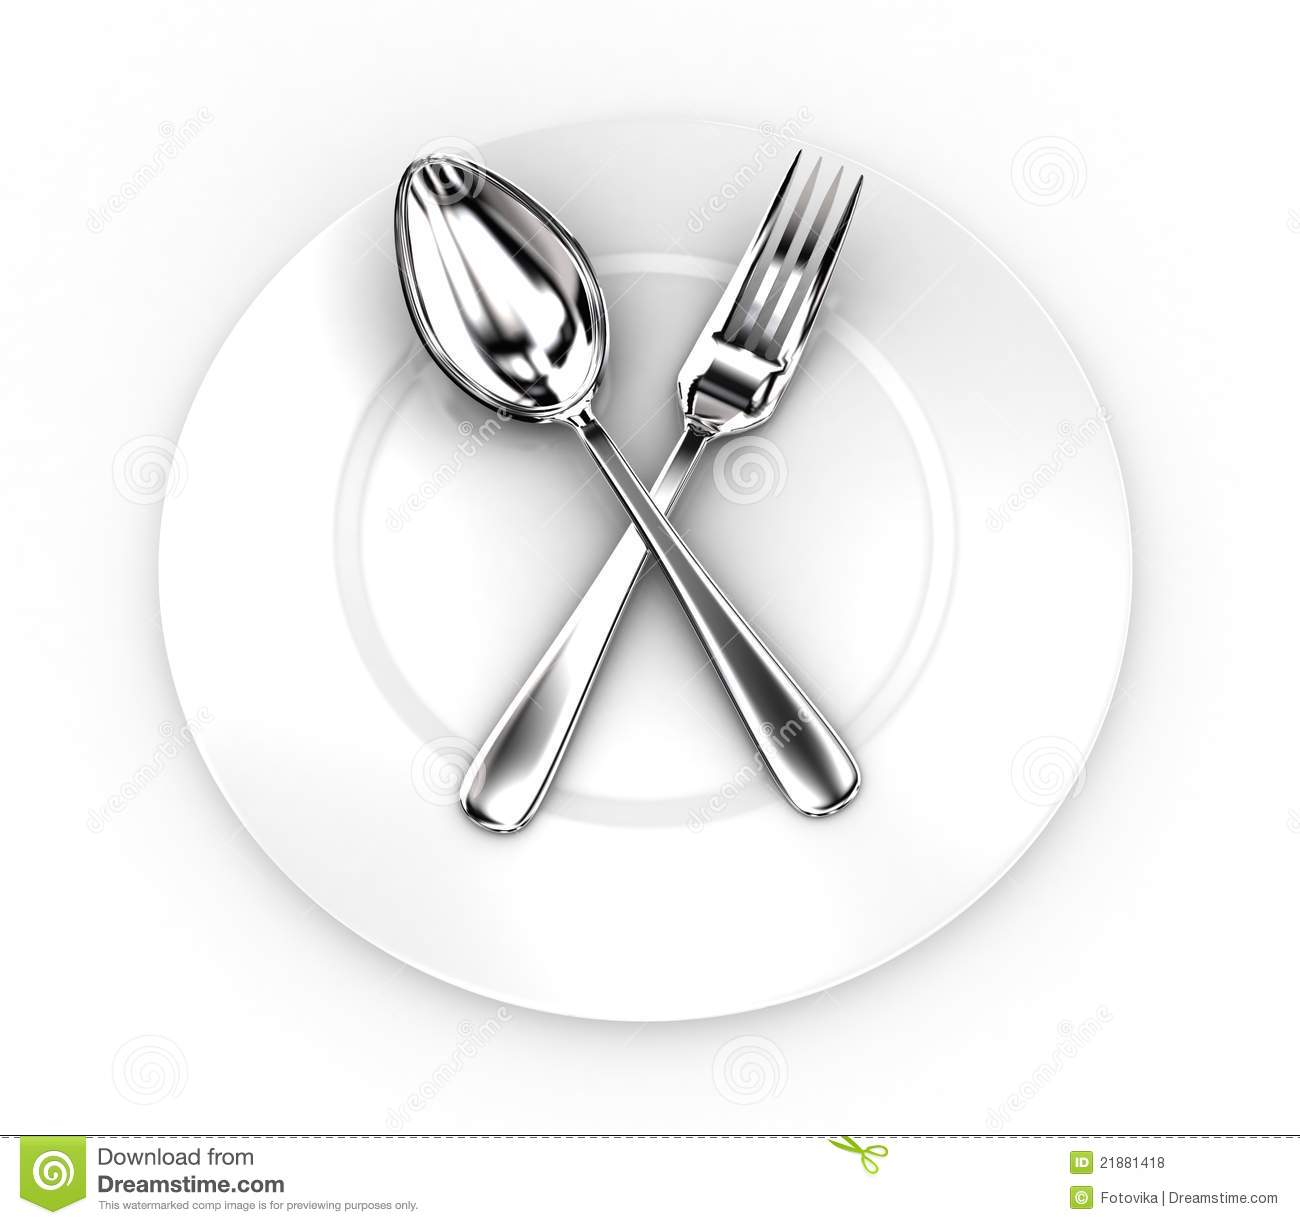 Fork And Spoon On A Plate Royalty Free Stock Photos  : fork spoon plate 21881418 from dreamstime.com size 1300 x 1225 jpeg 66kB